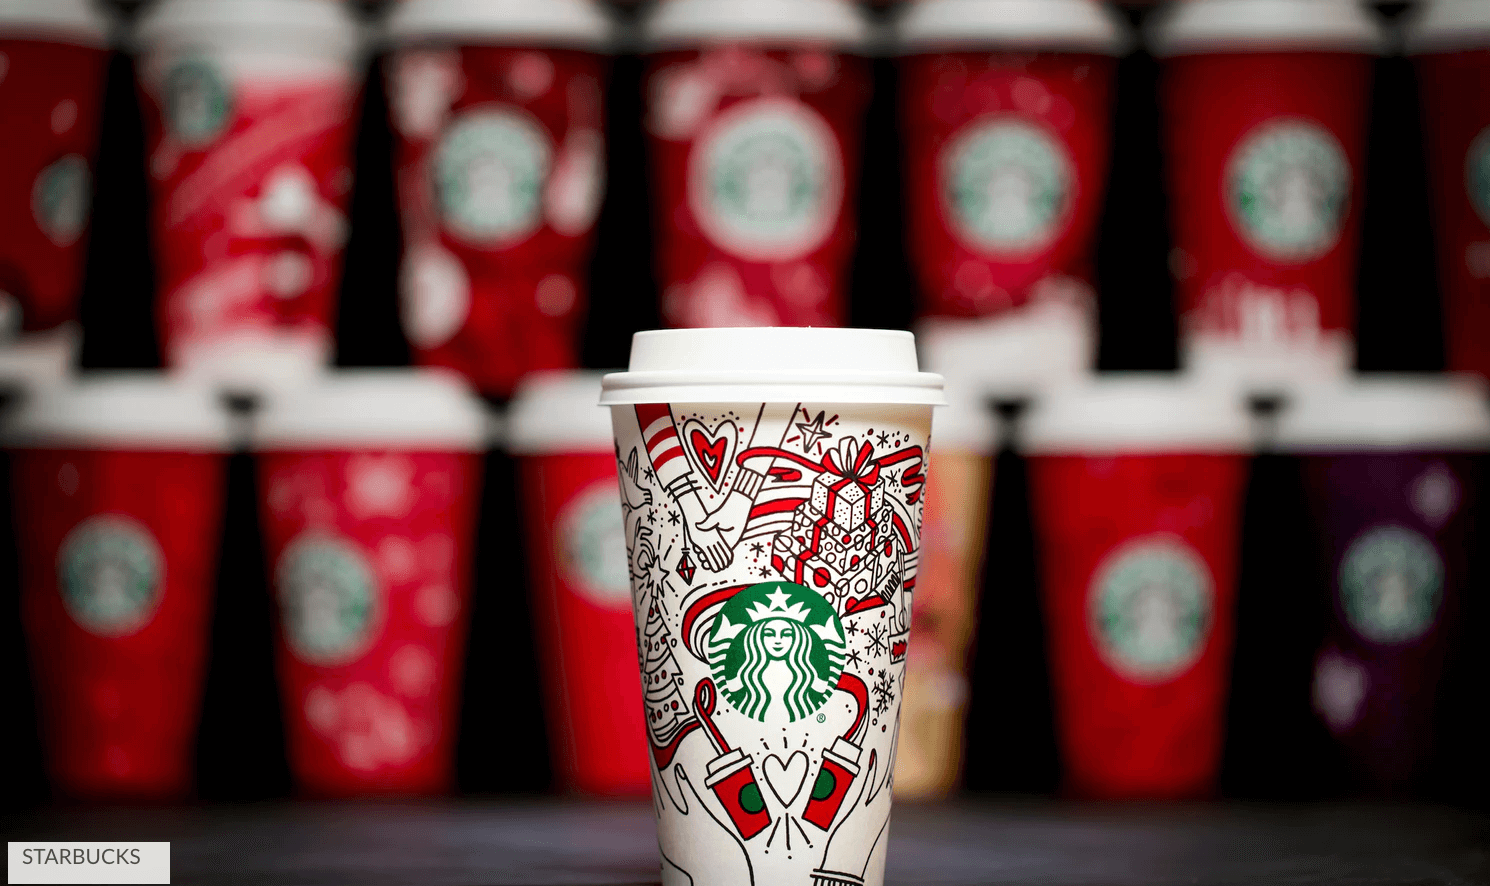 Starbucks: Creating Tradition to Spark Joy